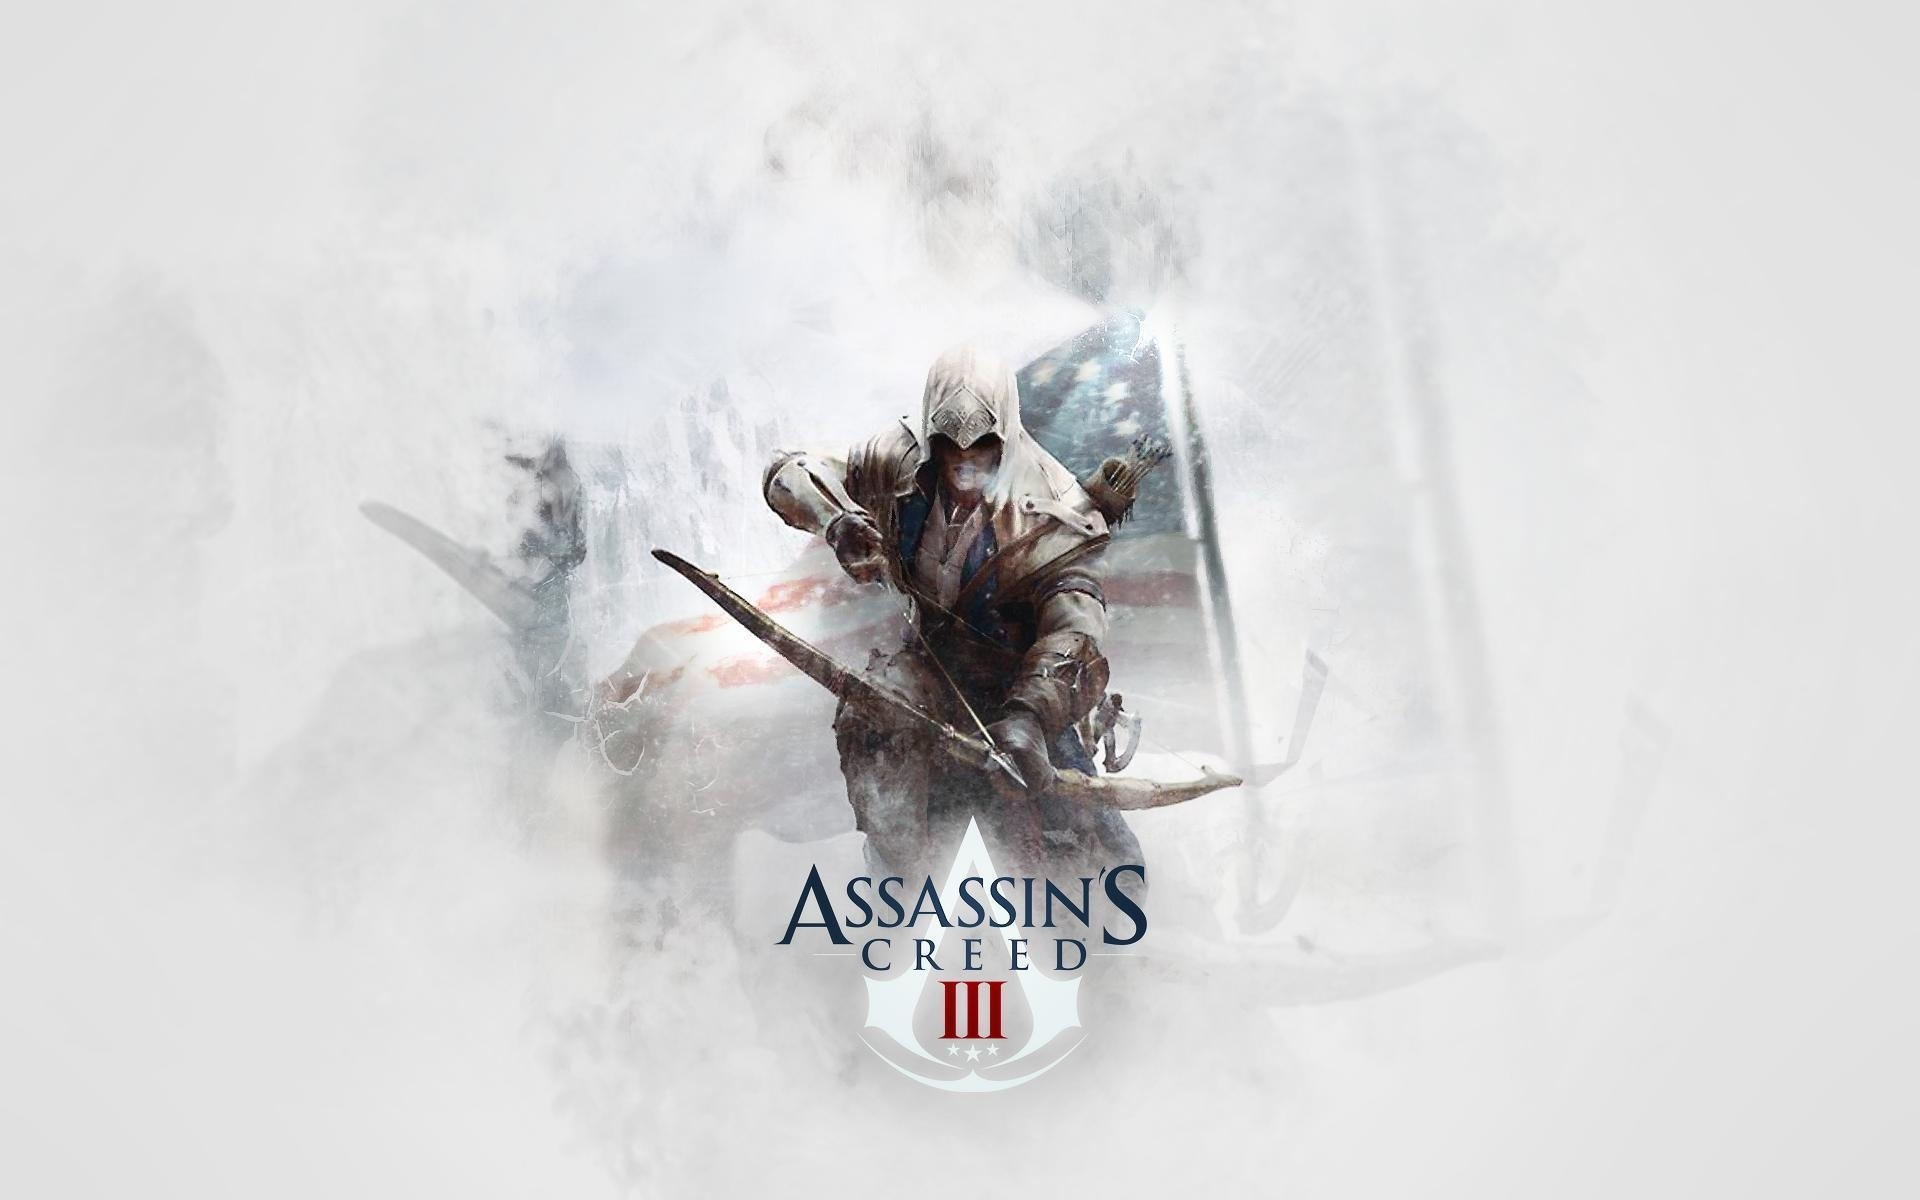 ... Everything Assassin's Creed Video Game Assassin's Creed III 256868